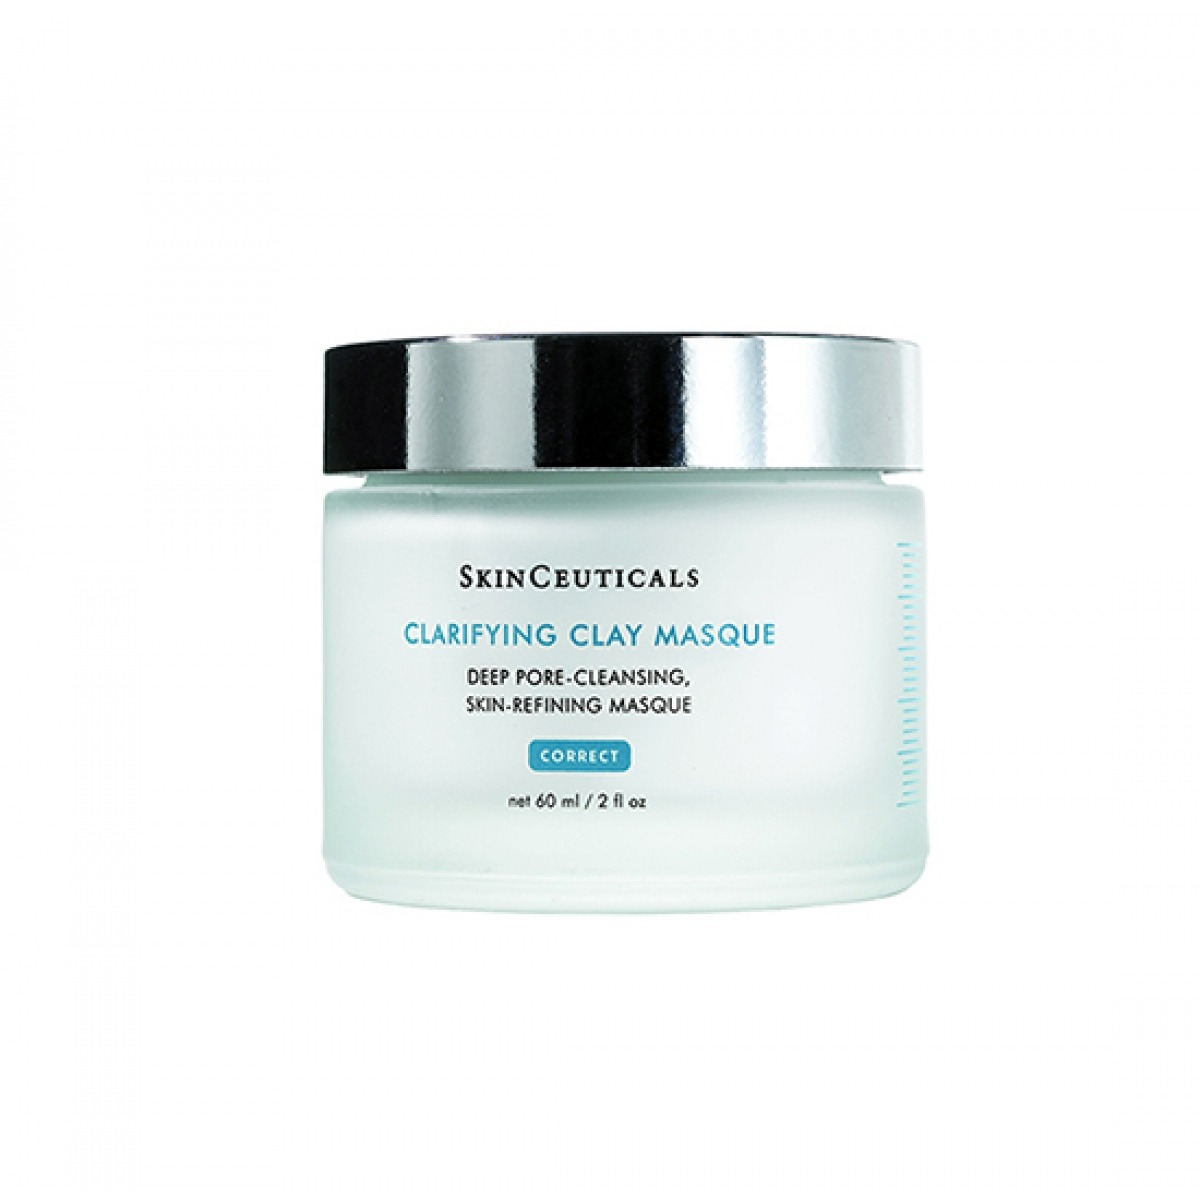 SKINCEUTICALS CLARIFYING CLAY MASQUE 60 ML